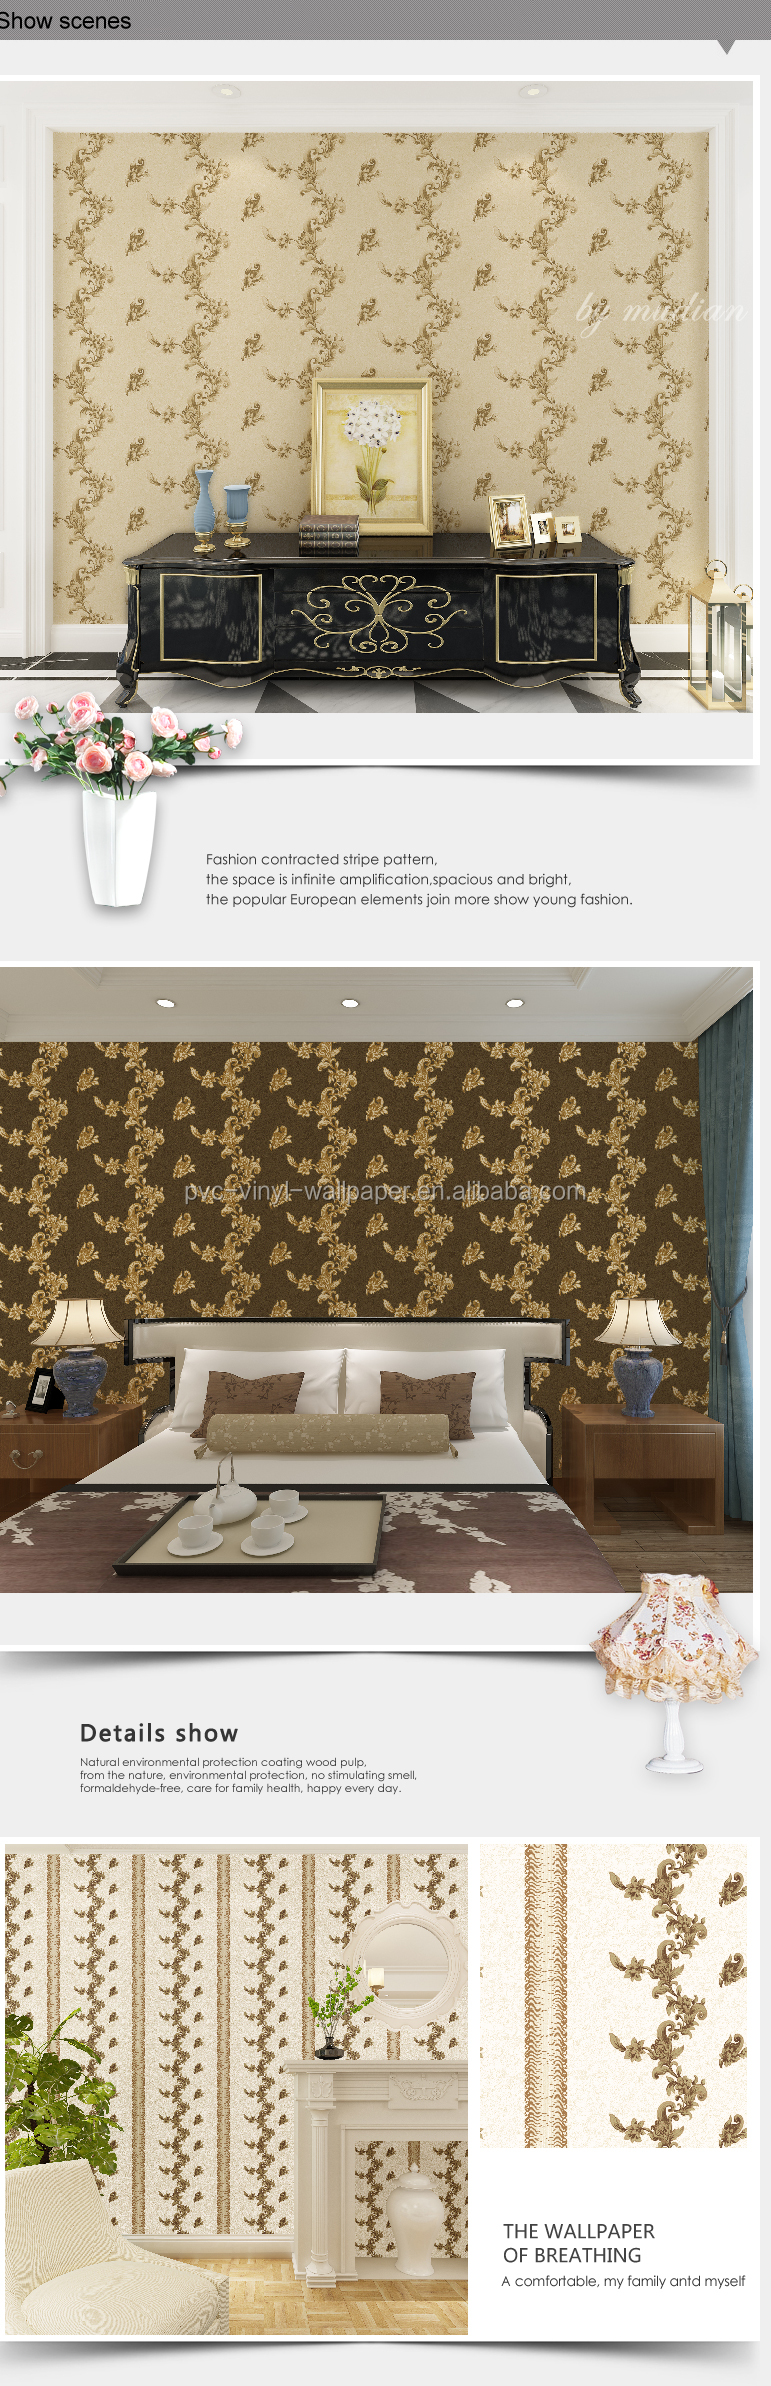 Wholesale bedroom decoration vinyl film for wall wallpaper